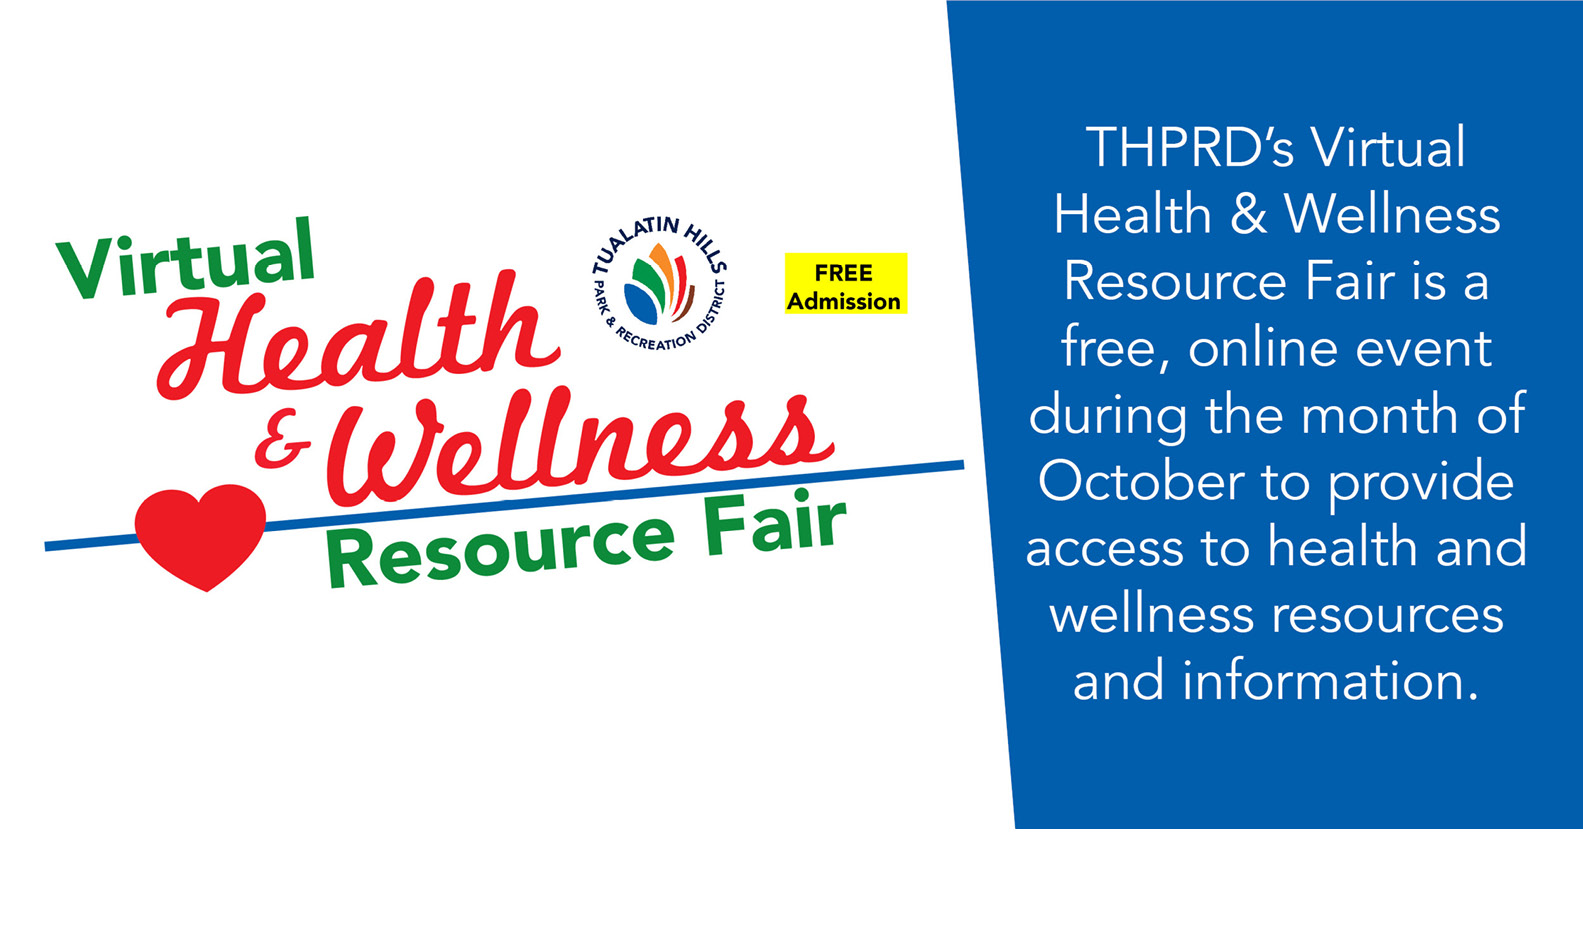 Health & Wellness - Virtual Resource Fair